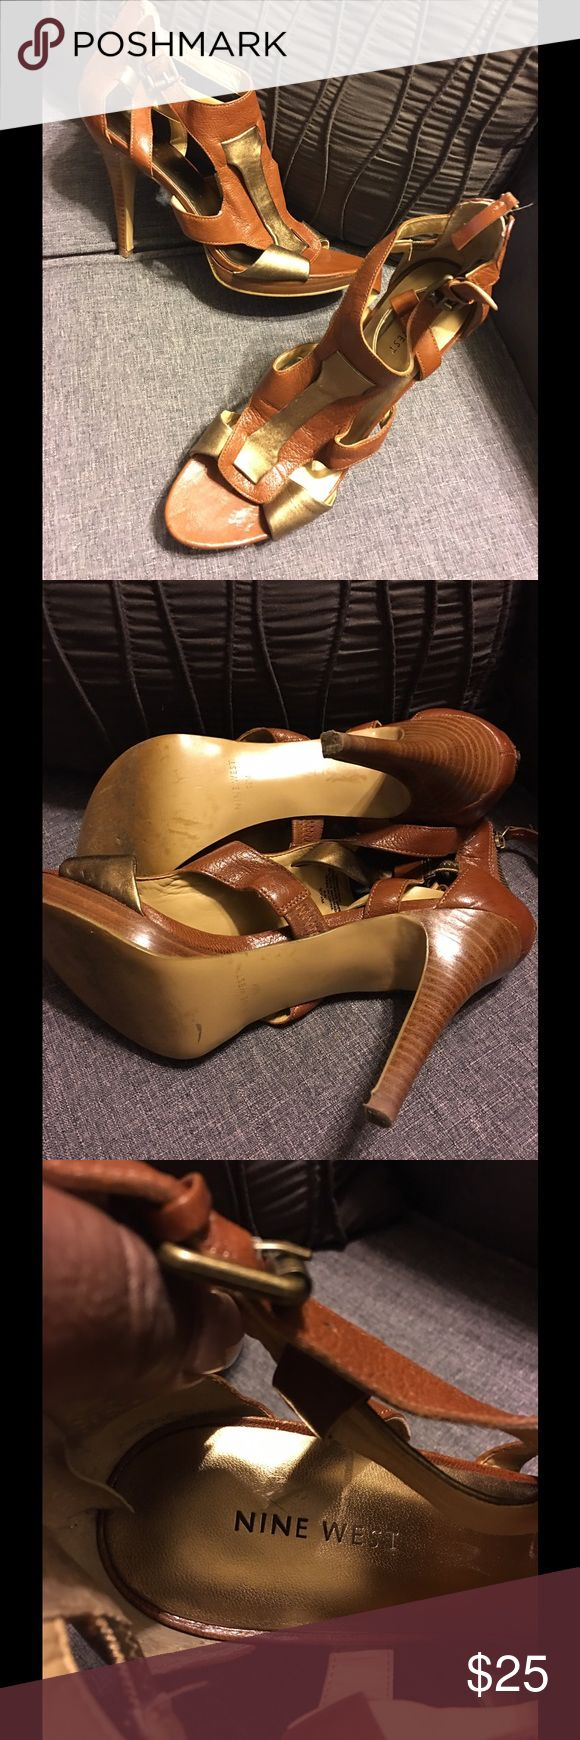 "JUST IN Nine West Strappy High Heel Sandals. Beautiful Nine West Strappy High Heel Sandals.  The coloring on these  is HOT; camel paired with a gold strap. Size 9 1/2. Absolutely gorgeous. Slight wear, only worn twice. The heel height is 4 1/2 "" (includes a 1/2"" platform). Nine West Shoes Heels"